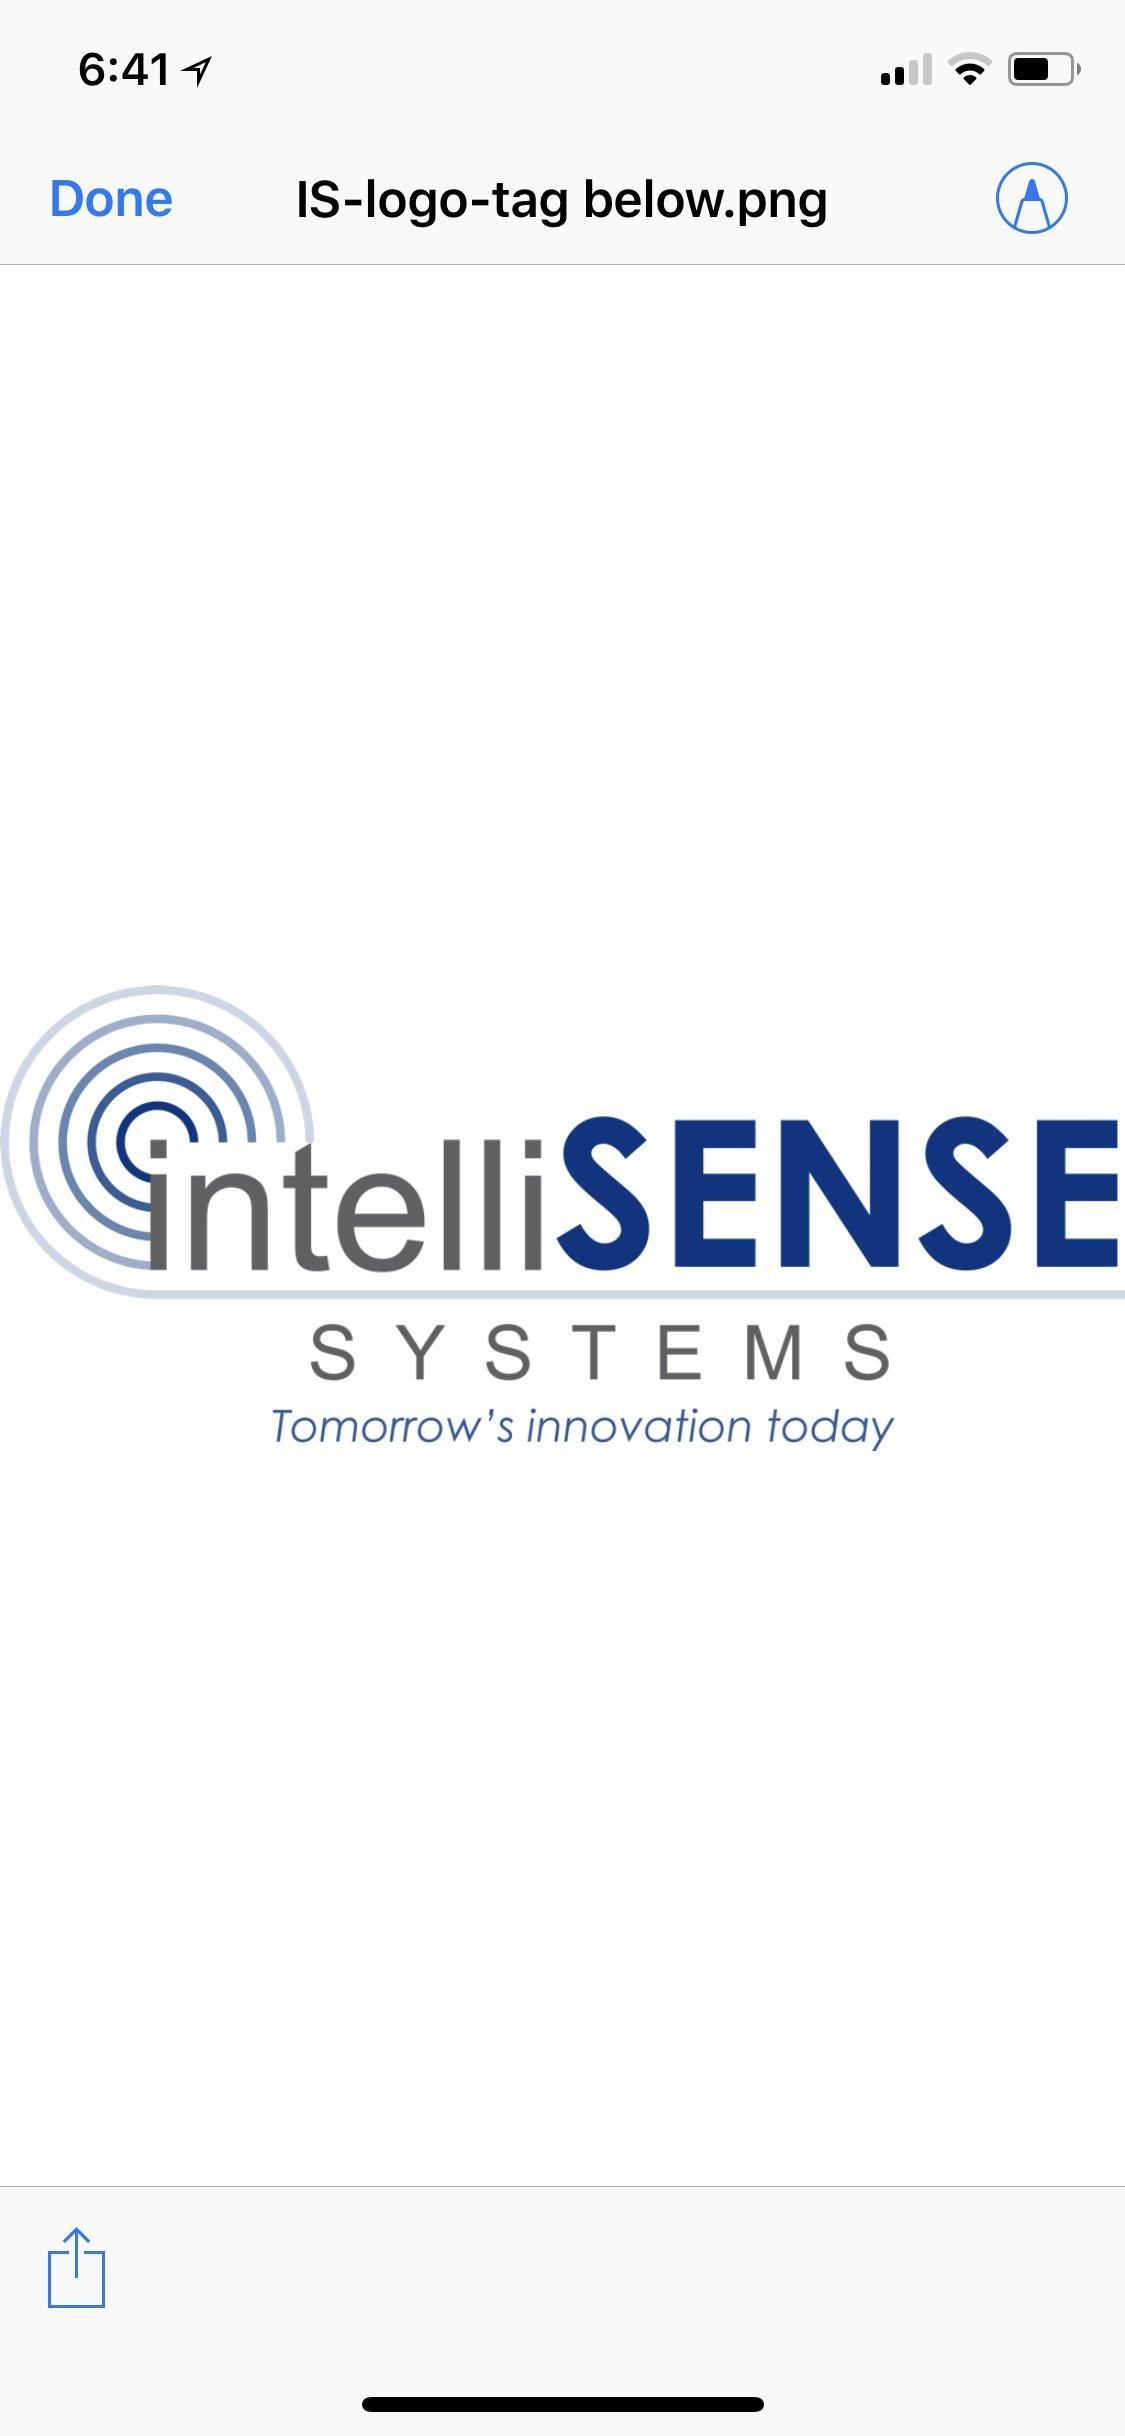 IntelliSense Systems